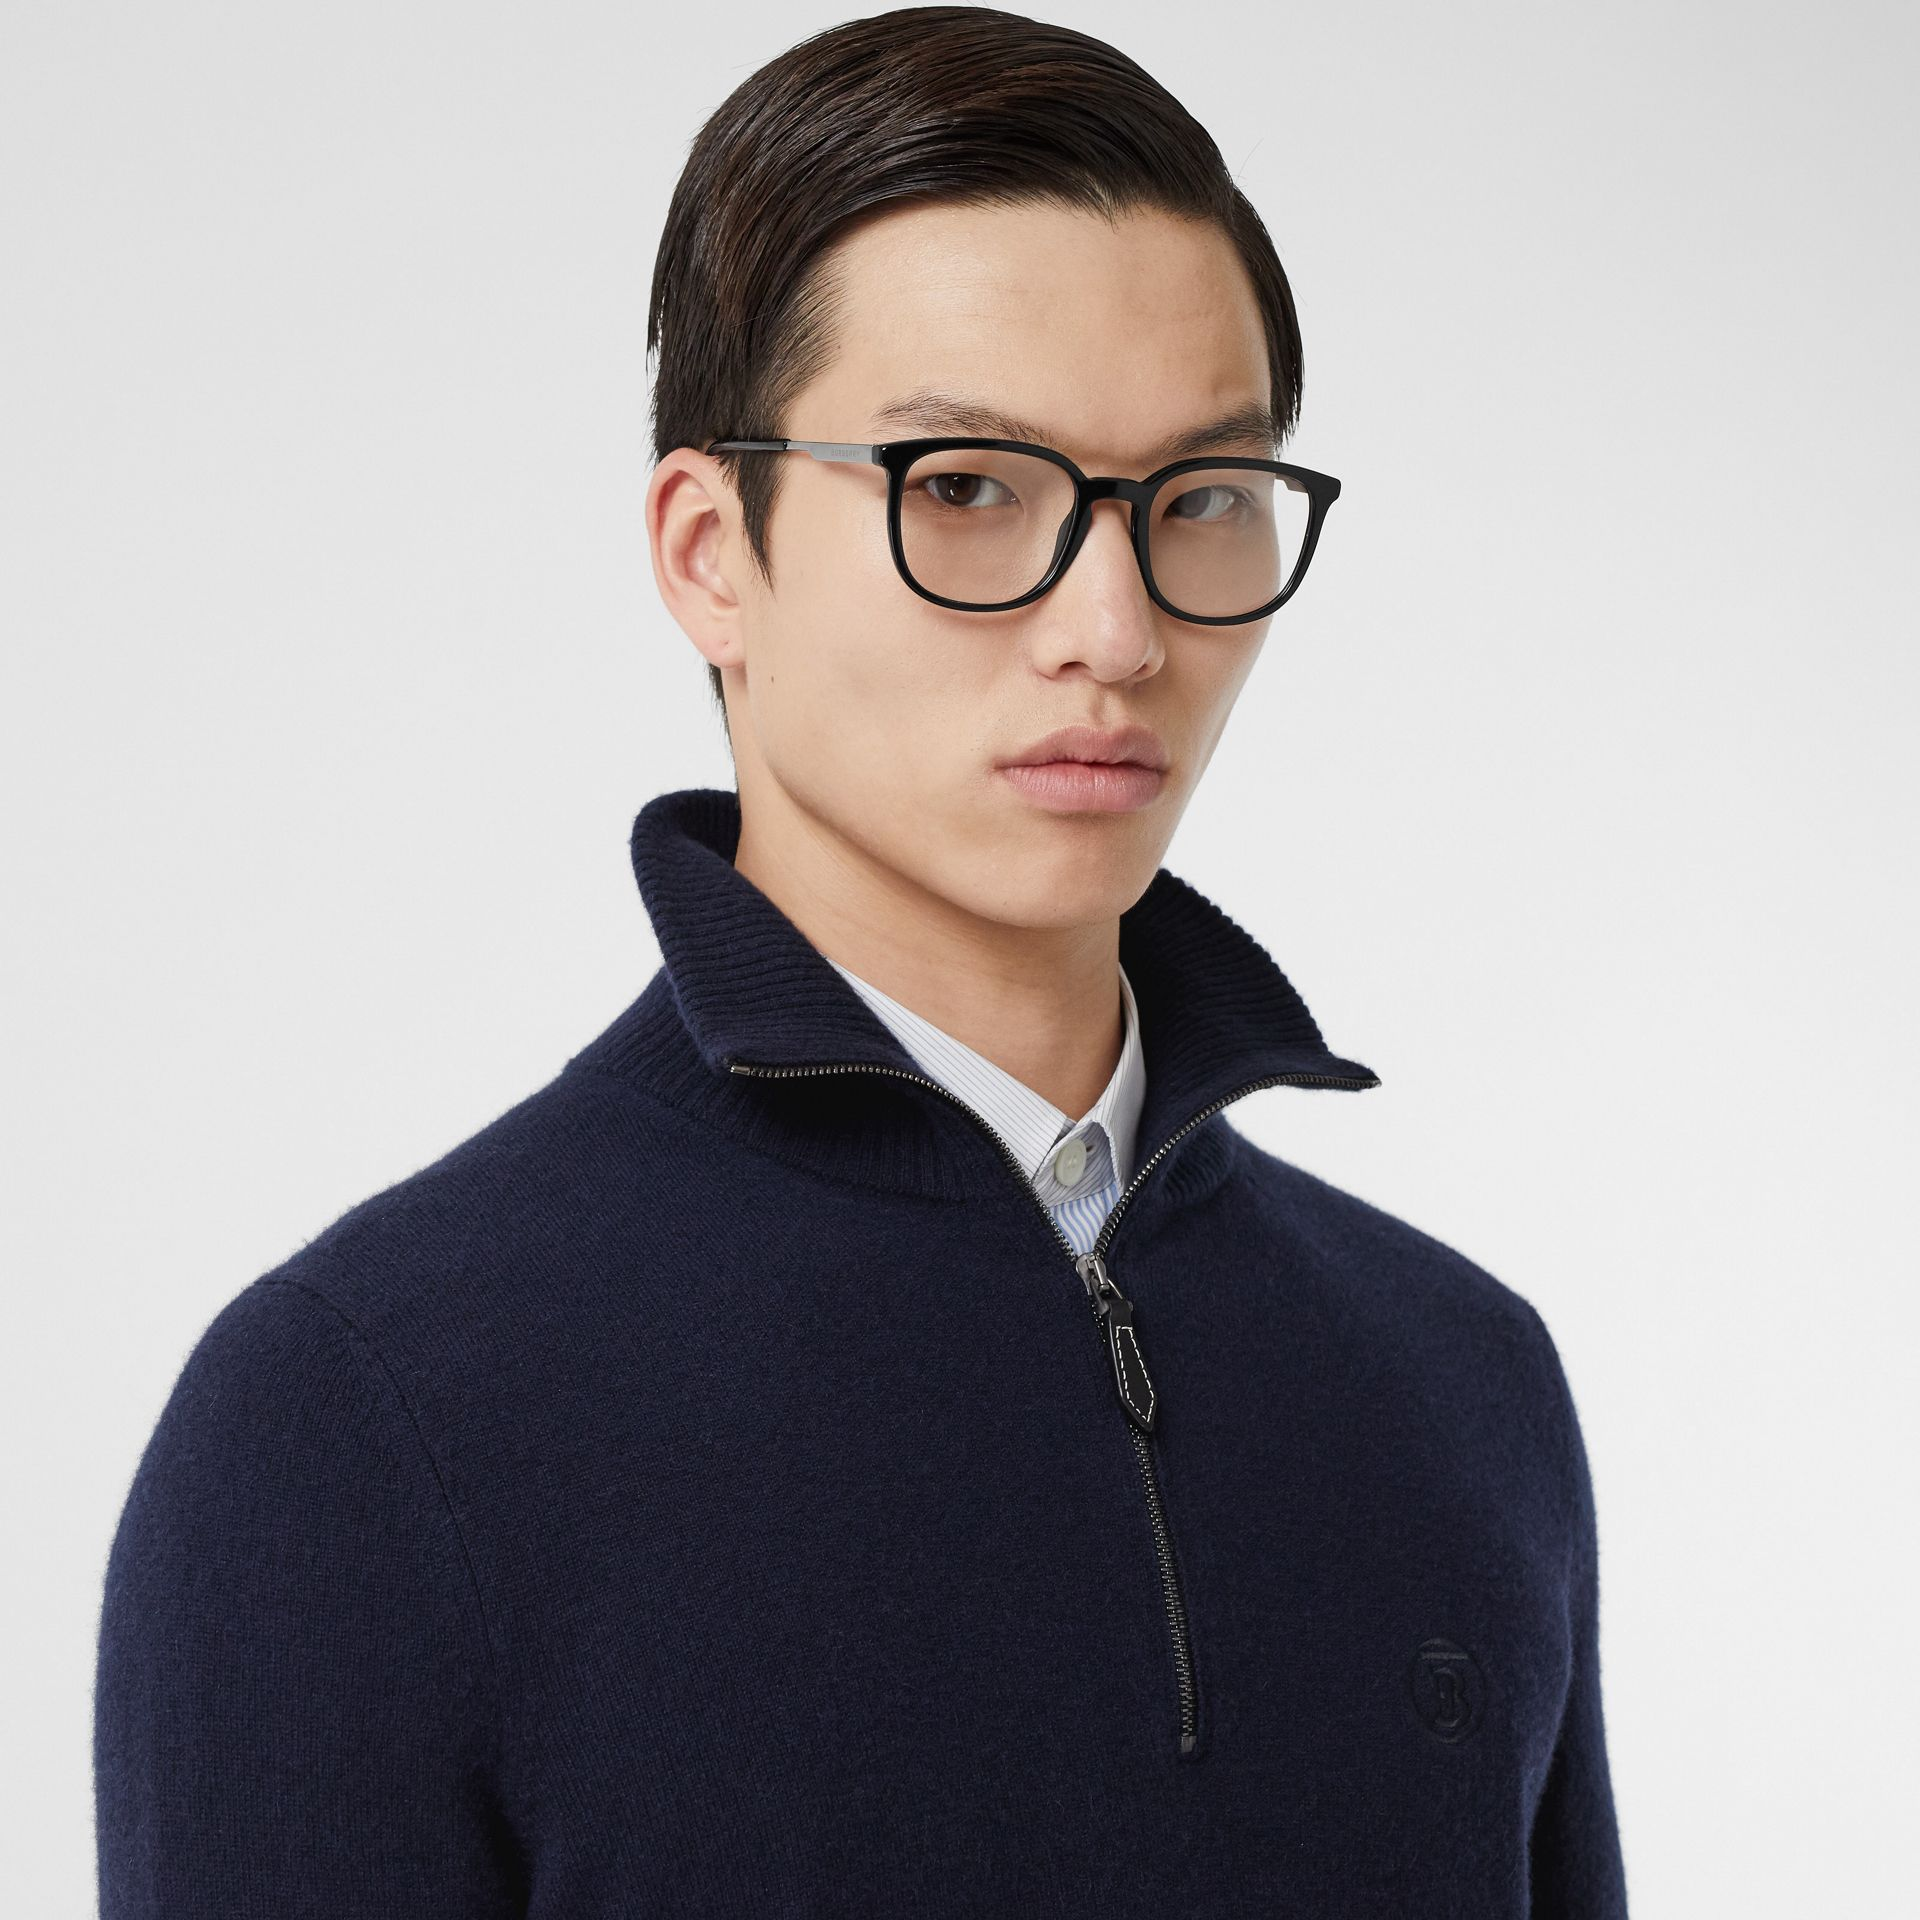 Monogram Motif Cashmere Funnel Neck Sweater in Navy - Men | Burberry Hong Kong S.A.R - gallery image 1